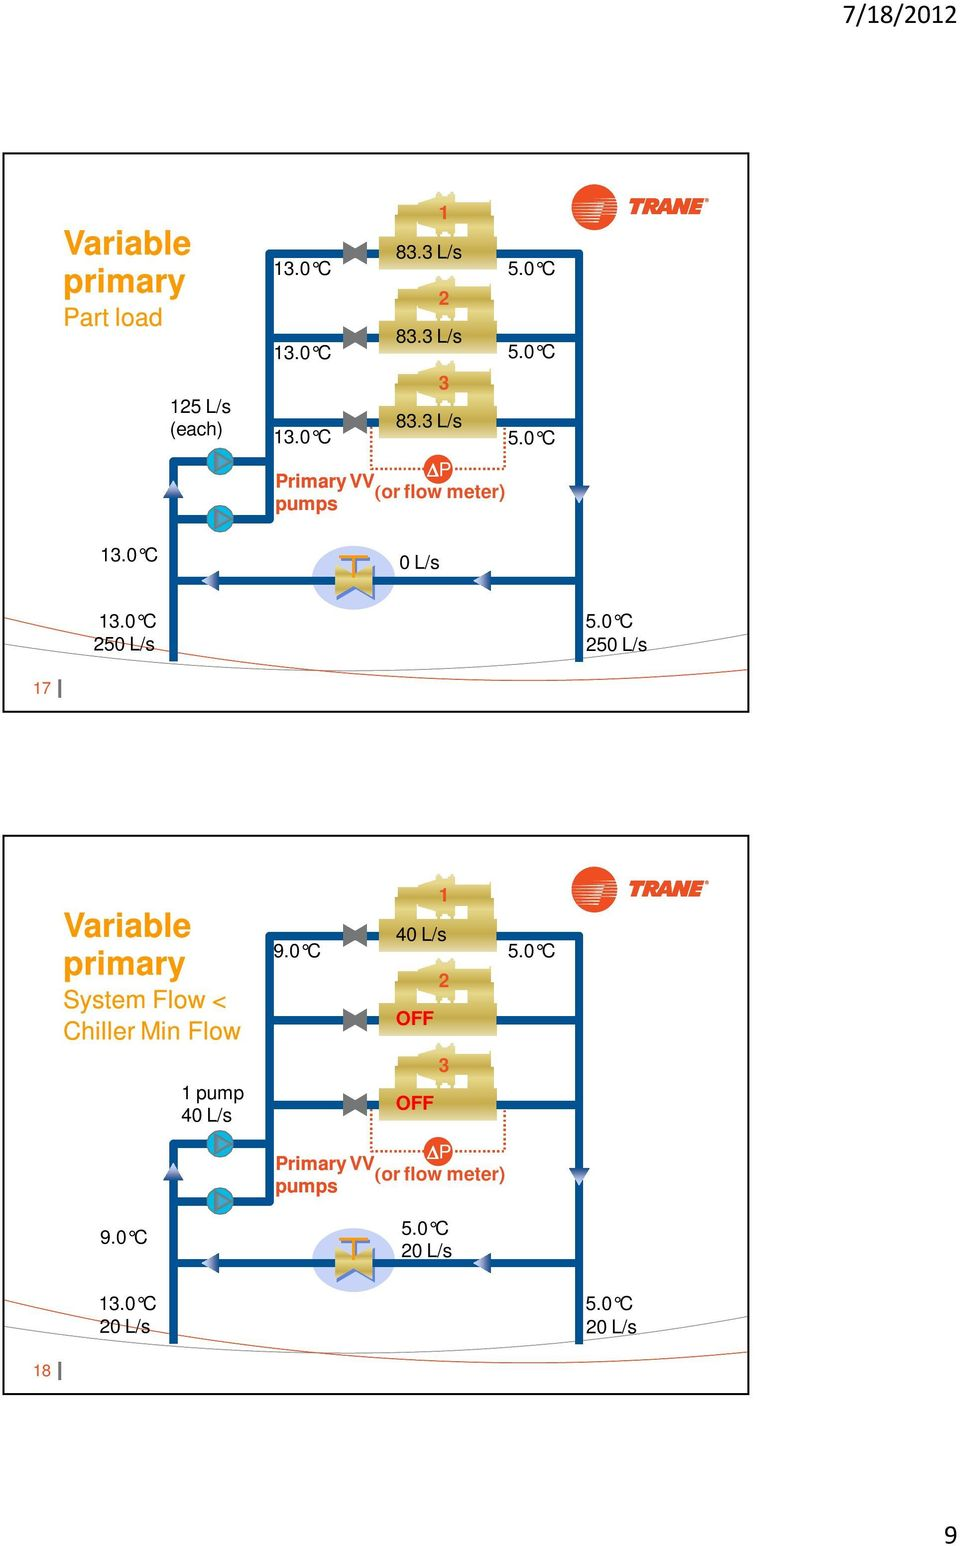 Variable primary System Flow < Chiller Min Flow 9.0 C 1 pump 40 L/s 9.